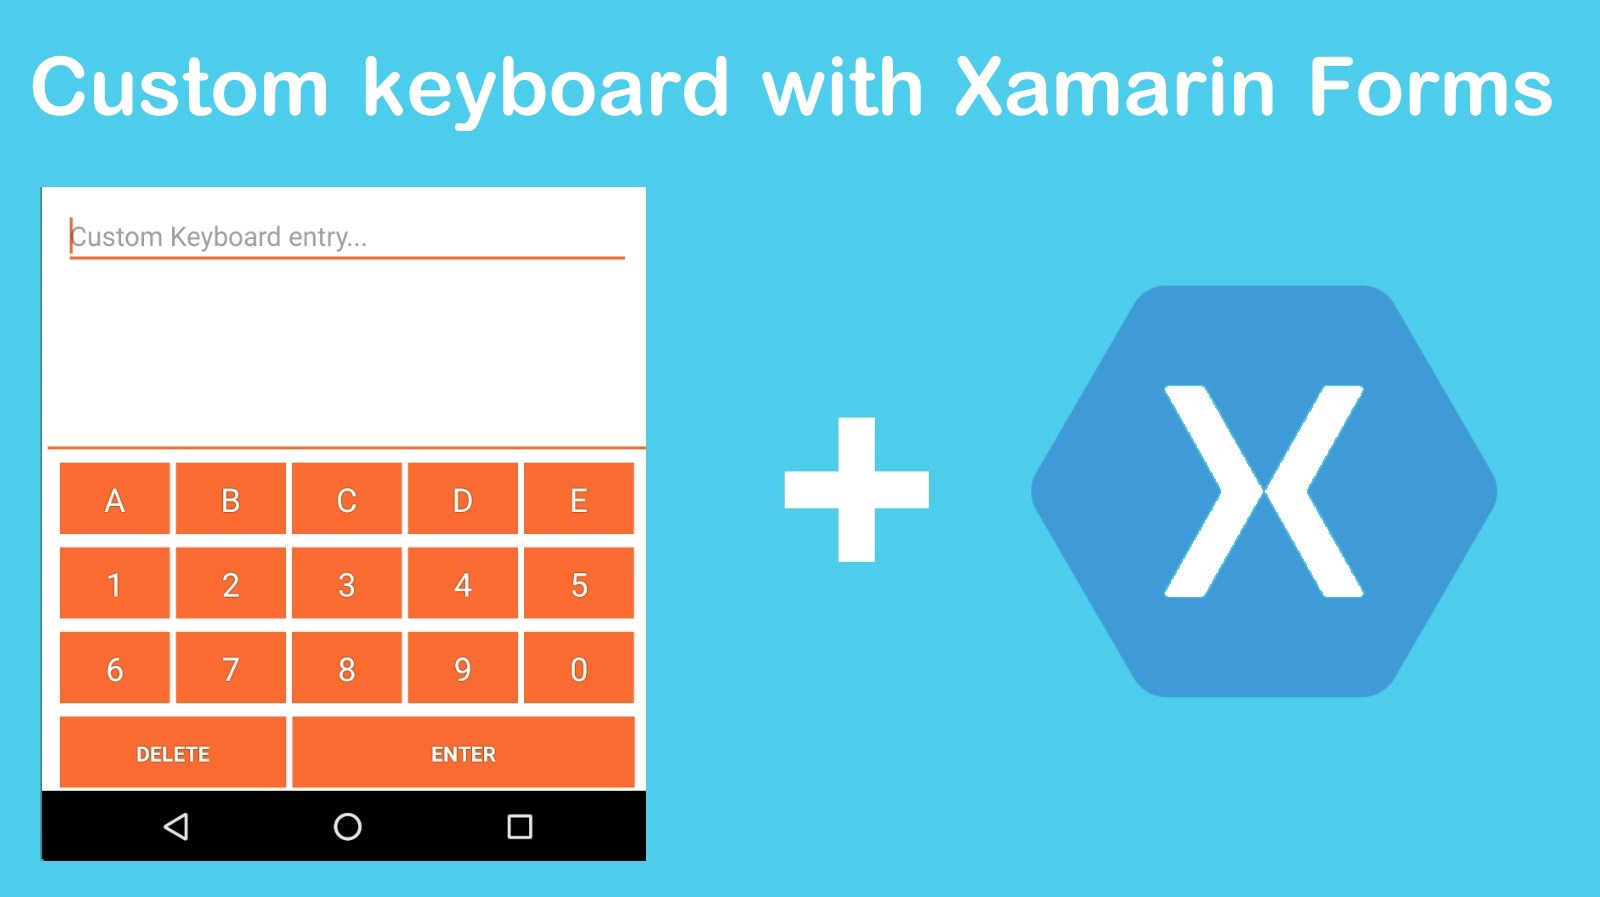 How to create a custom keyboard with Xamarin Forms (Android)